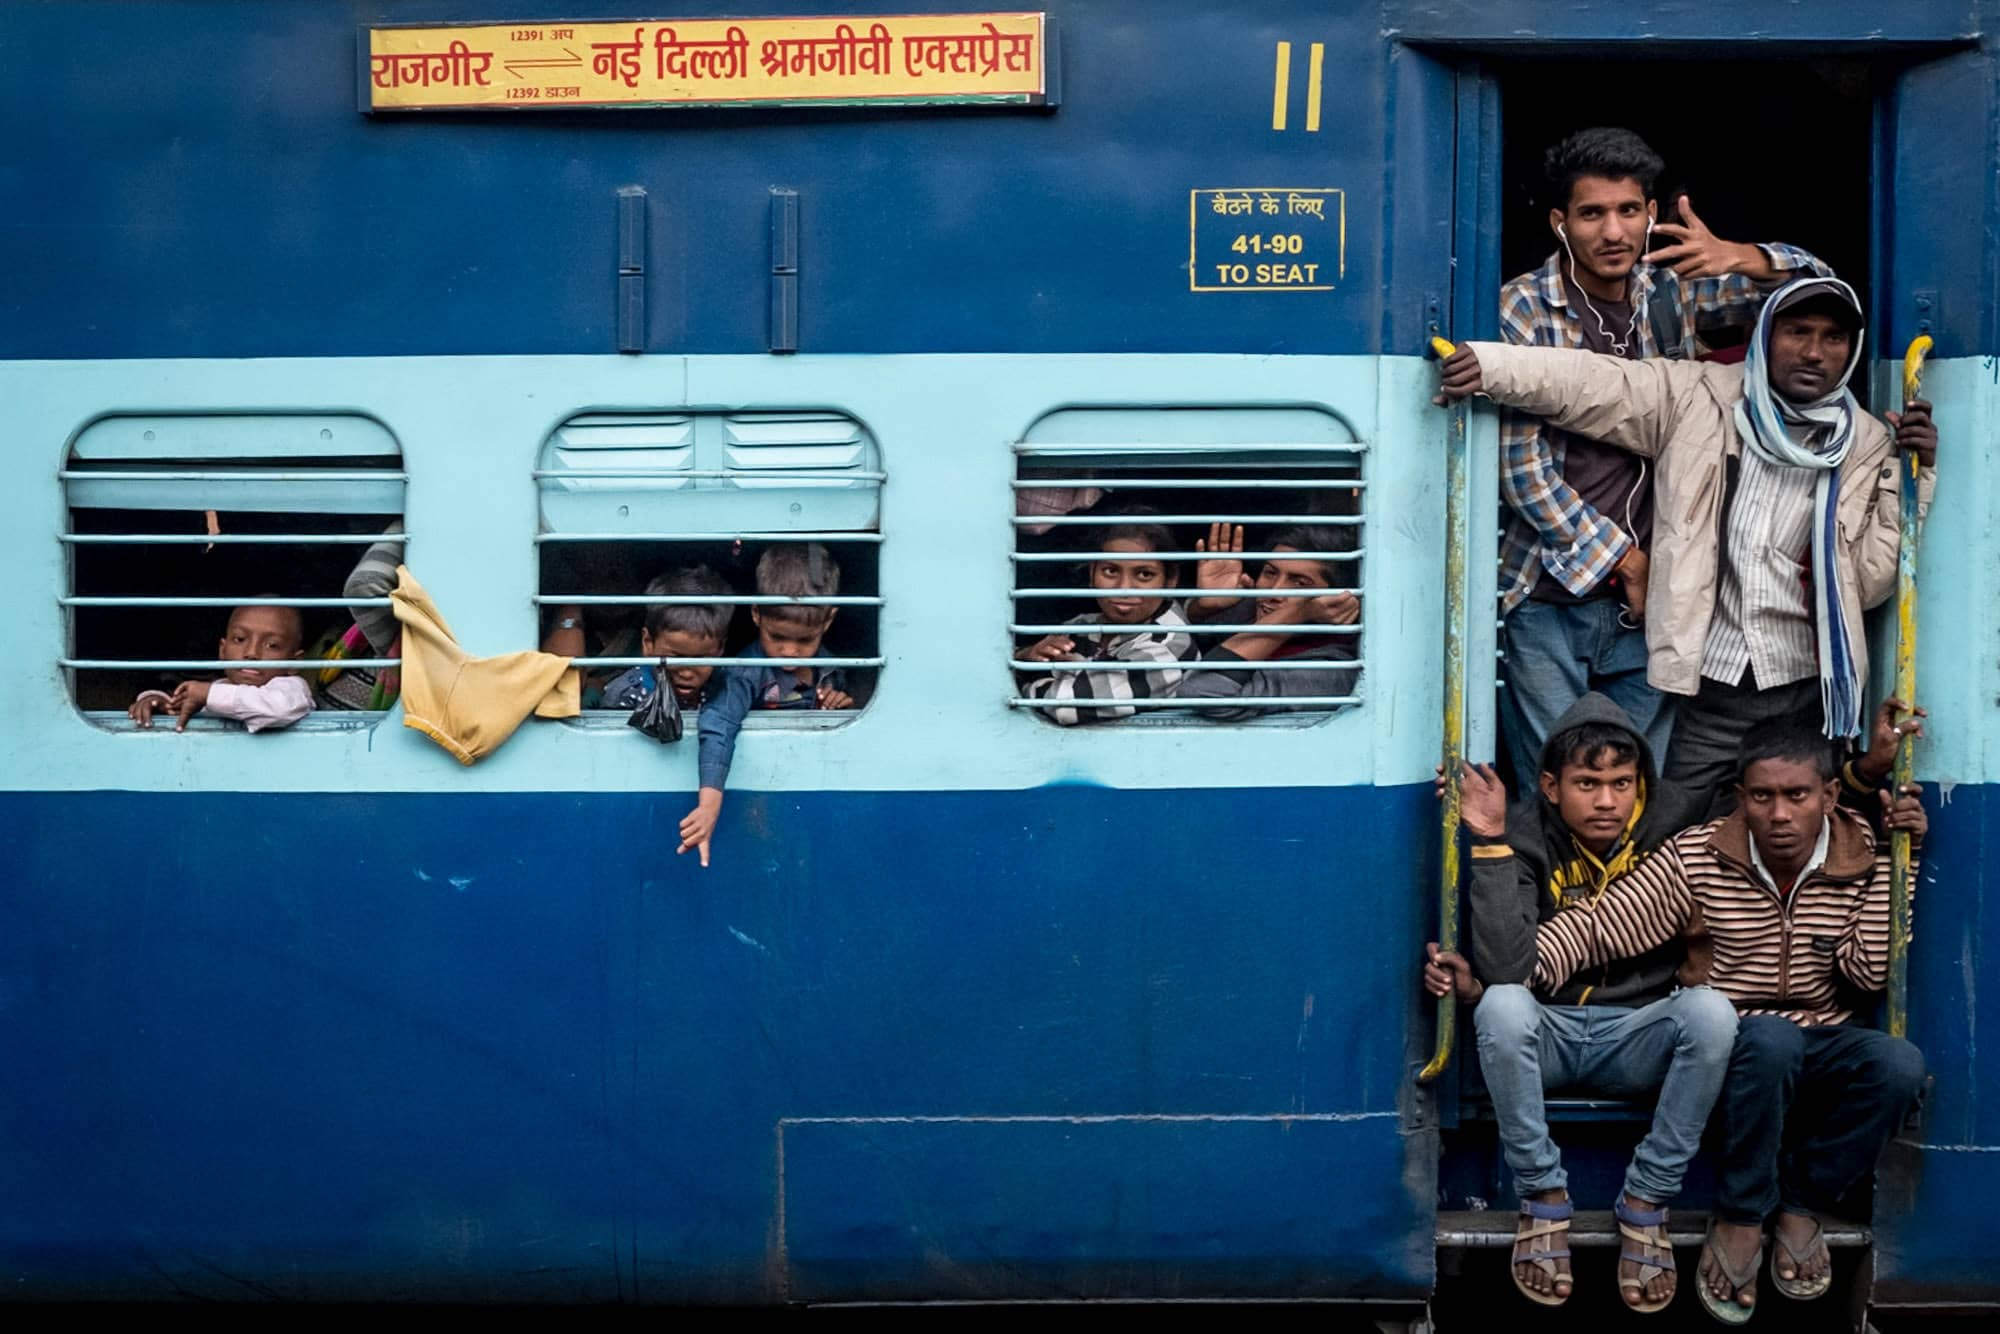 A blue train packed with people taken during india street photography trip